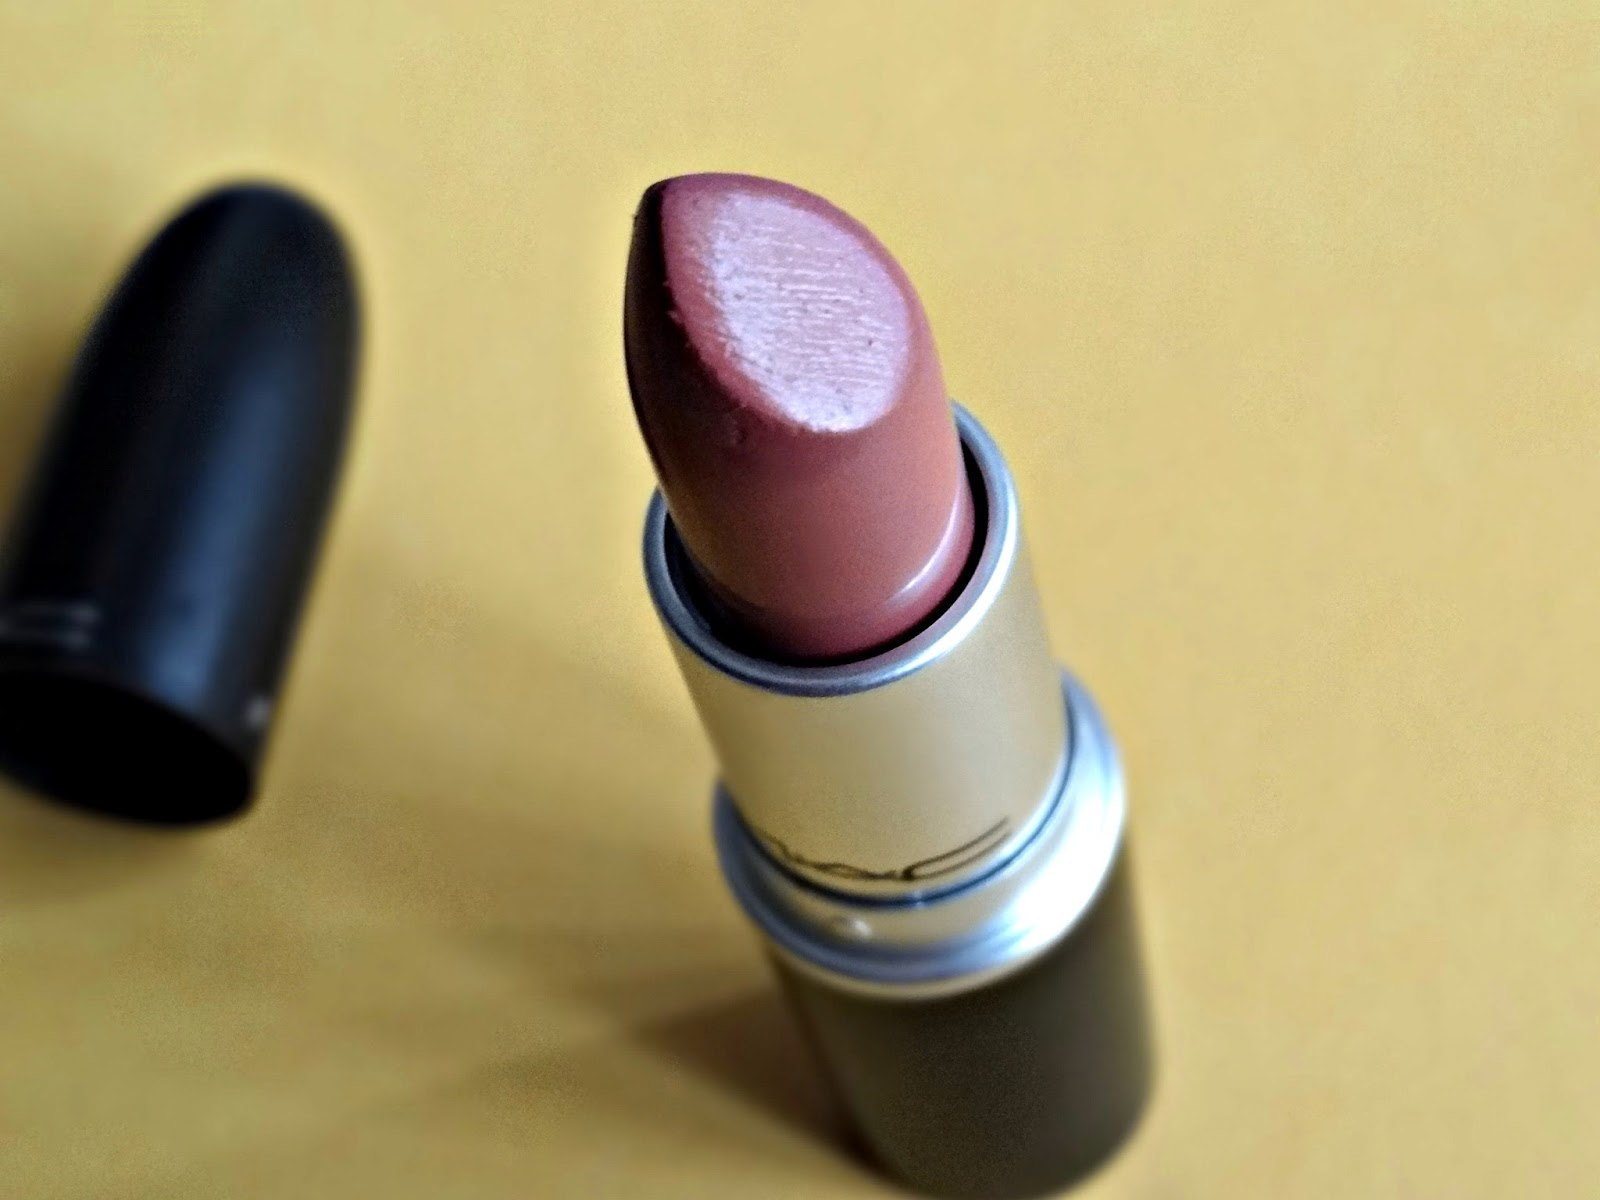 MAC Cremesheen Lipstick in Modesty Review, Photos & Swatches